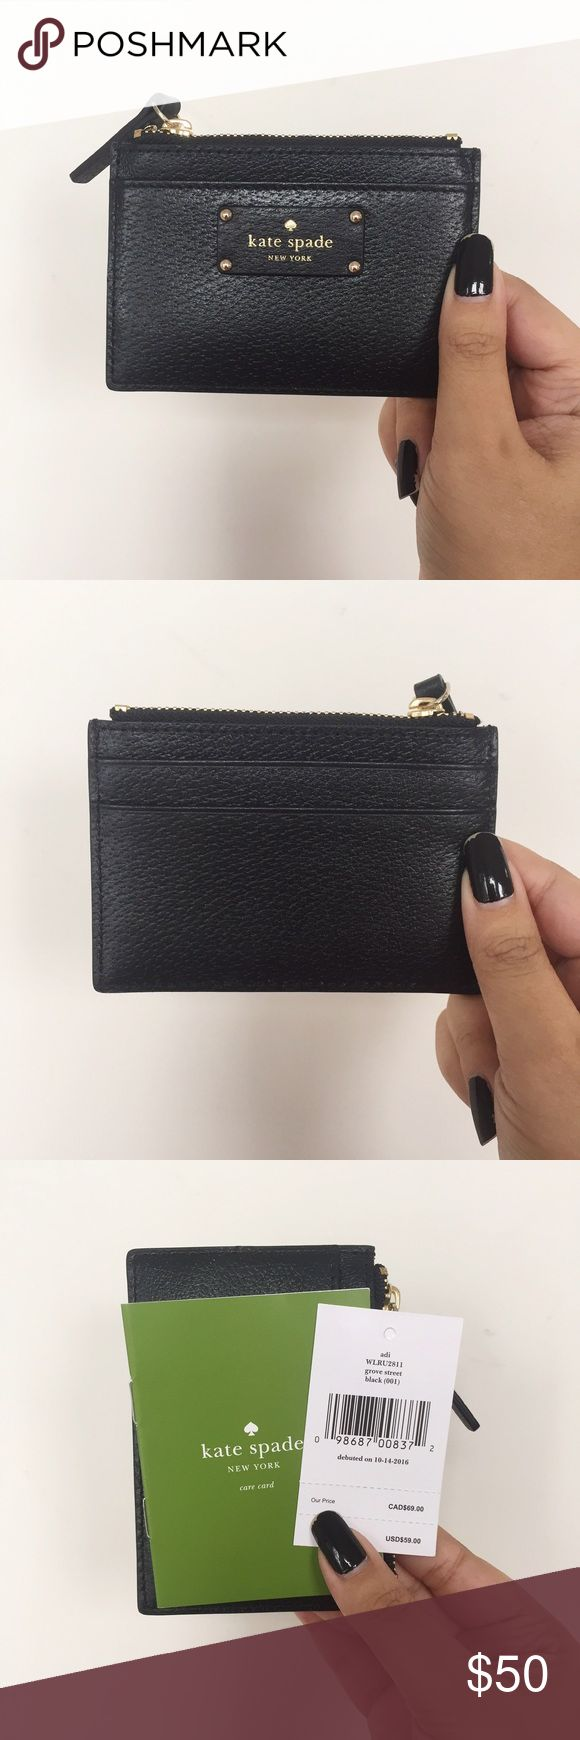 🔵 Kate Spade NY Card Holder- Black NWT Black card holder with gold detailing from Kate Spade NY. It has three slots (one in the front, two in the back) and a zippered pocket. It's super cute and perfect for a night out to throw in a clutch without having to carry an actual wallet. Great gift or stocking stuffer for this Christmas! Any questions, please don't hesitate to ask me! (Price is negotiable, please use the offer button. No lowballing) kate spade Accessories Key & Card Holders